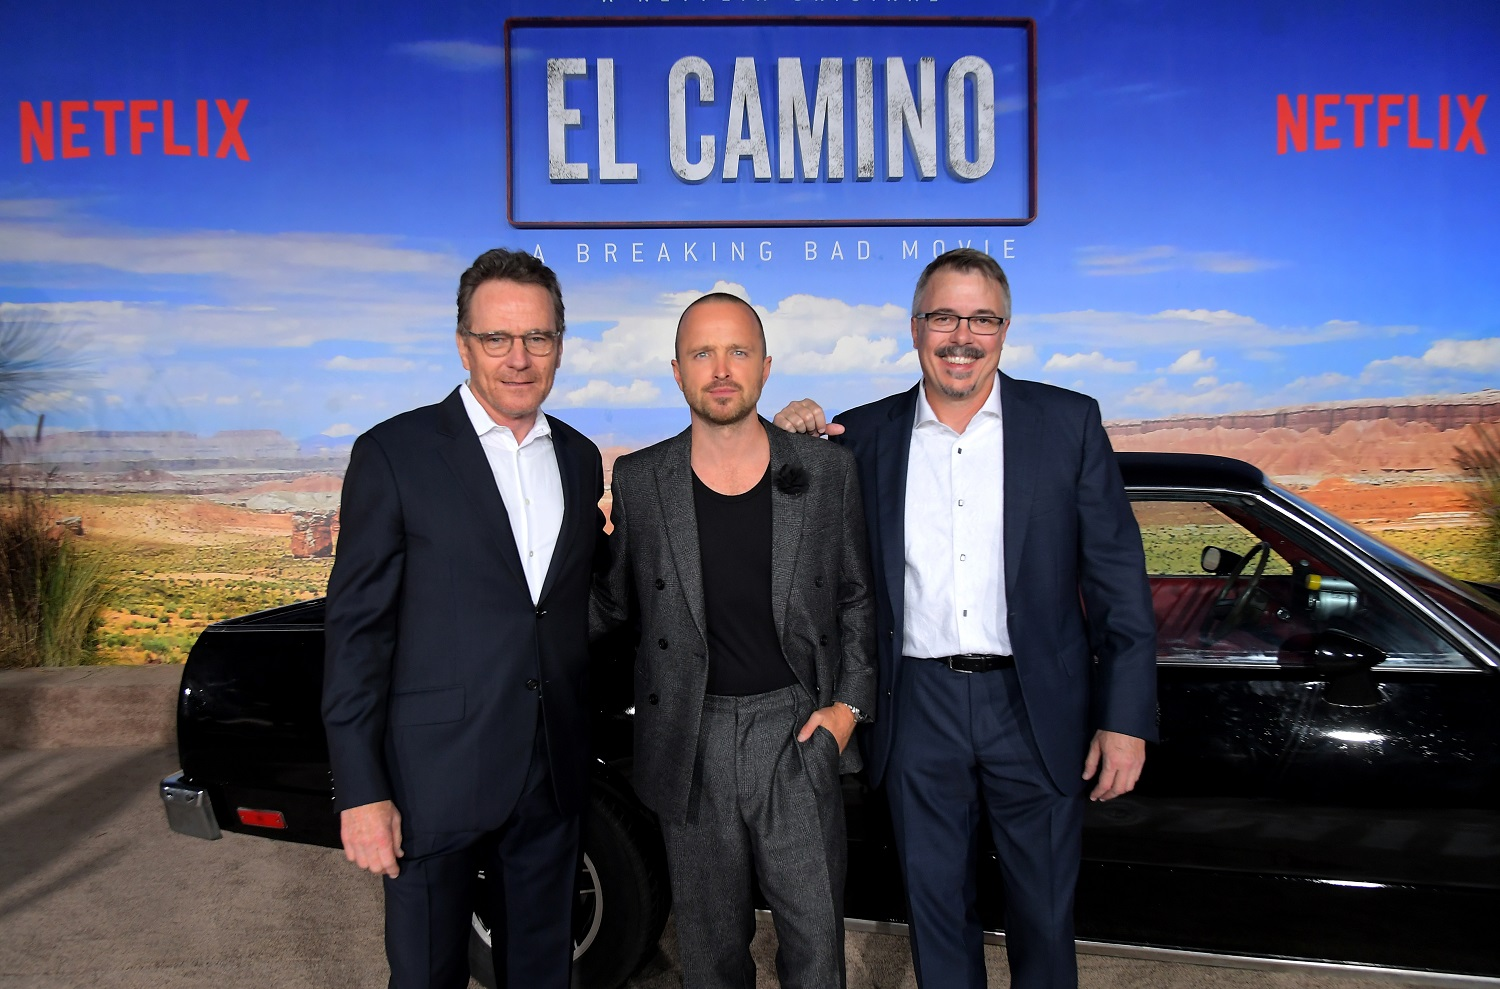 Breaking Bad stars Bryan Cranston and Aaron Paul and writer Vince Gilligan attend the World Premiere of El Camino: A Breaking Bad Movie